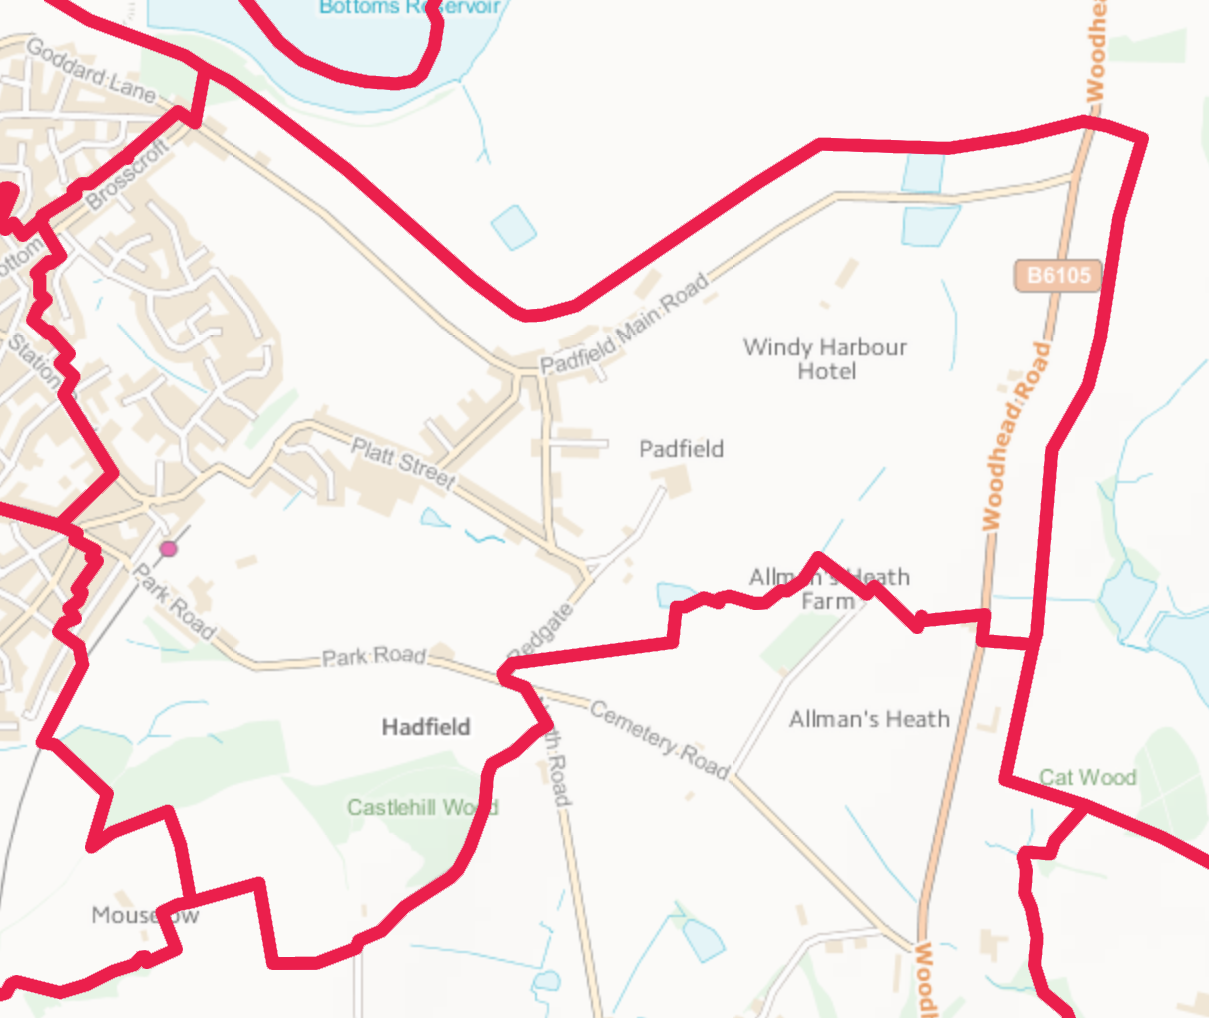 Map of Padfield Ward